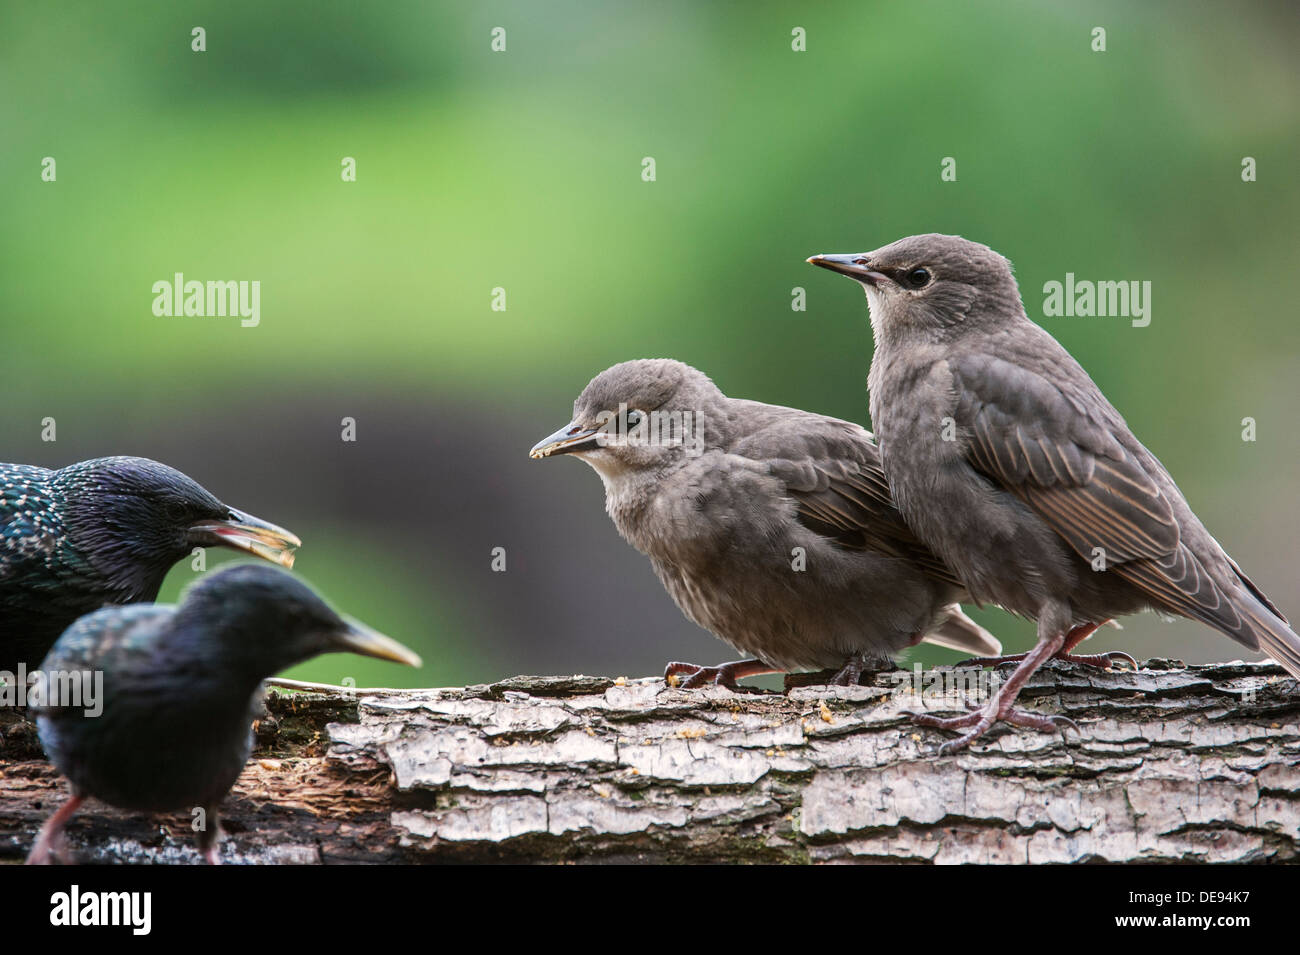 Two Common Starling / European starlings (Sturnus vulgaris) fledglings begging adult birds for food in spring Stock Photo